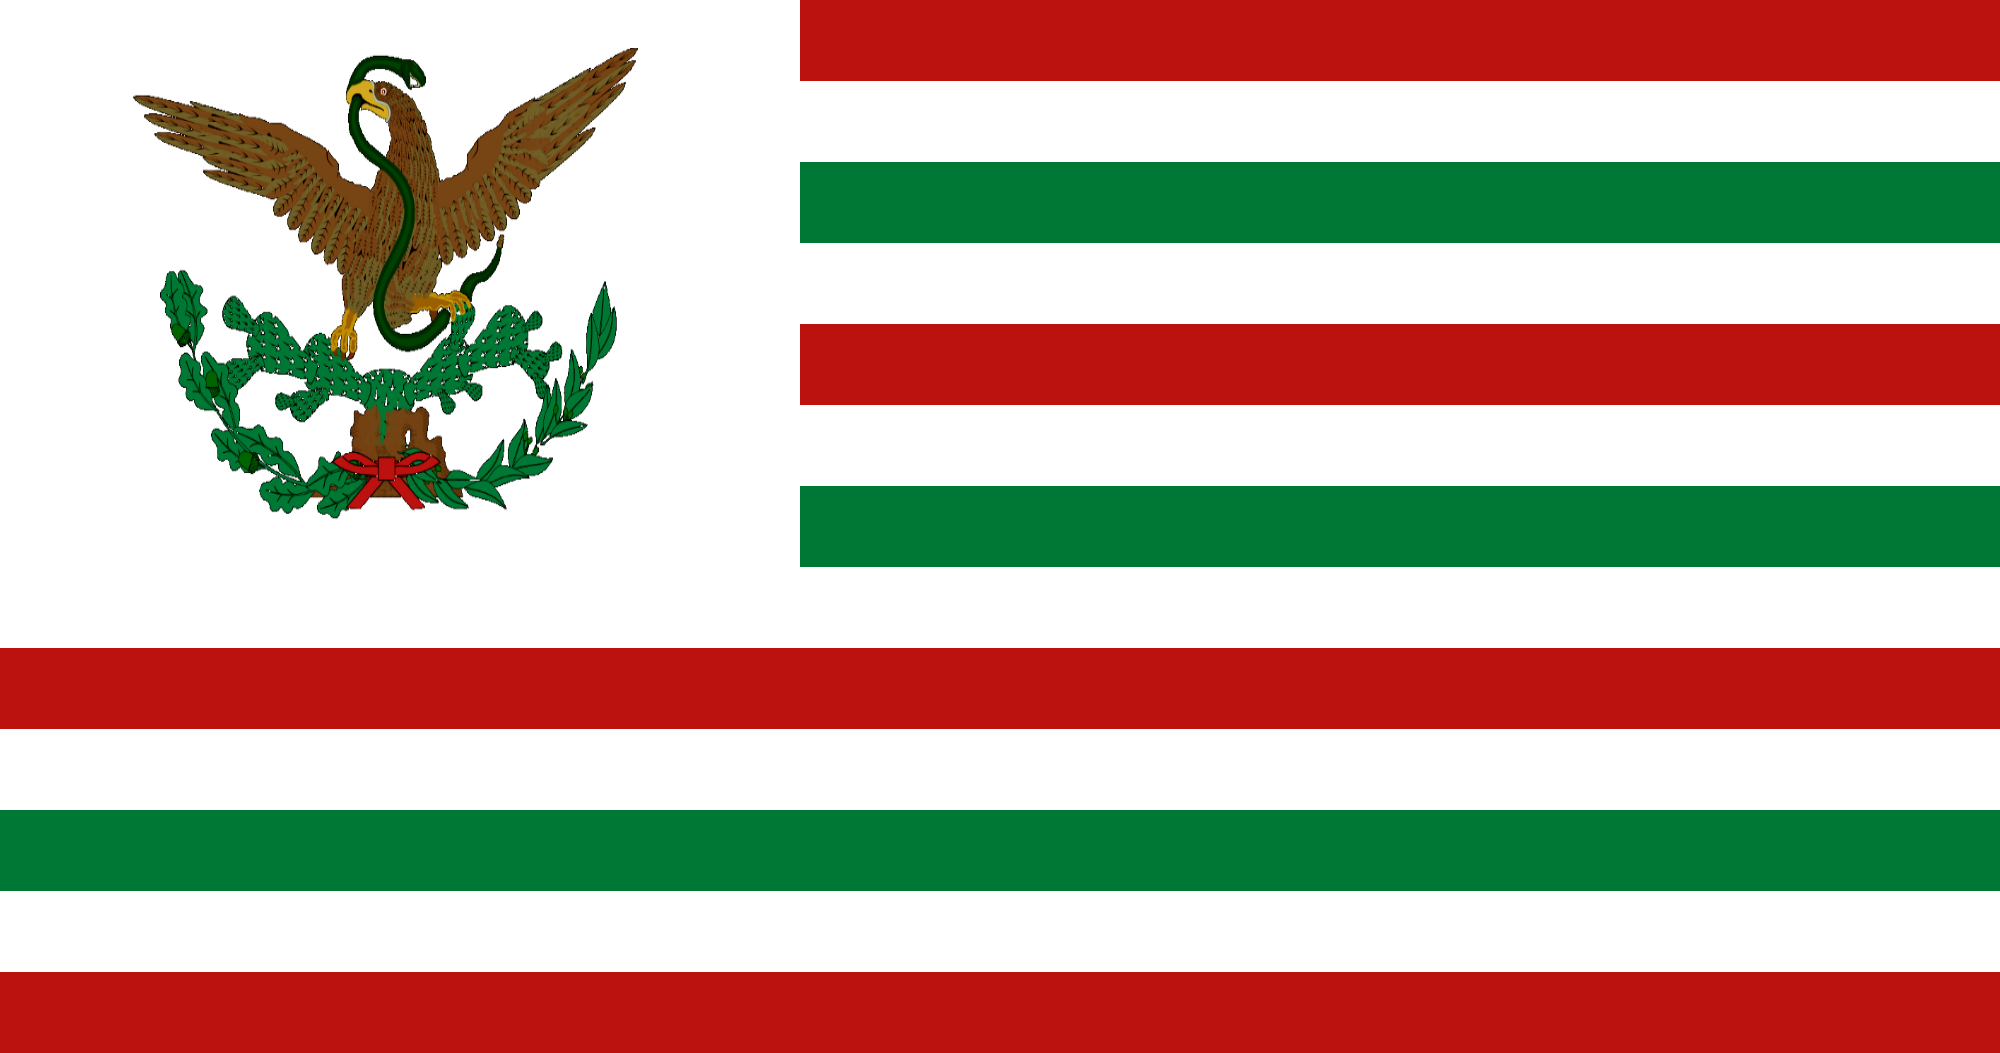 image alternate mexico flag png alternative history fandom